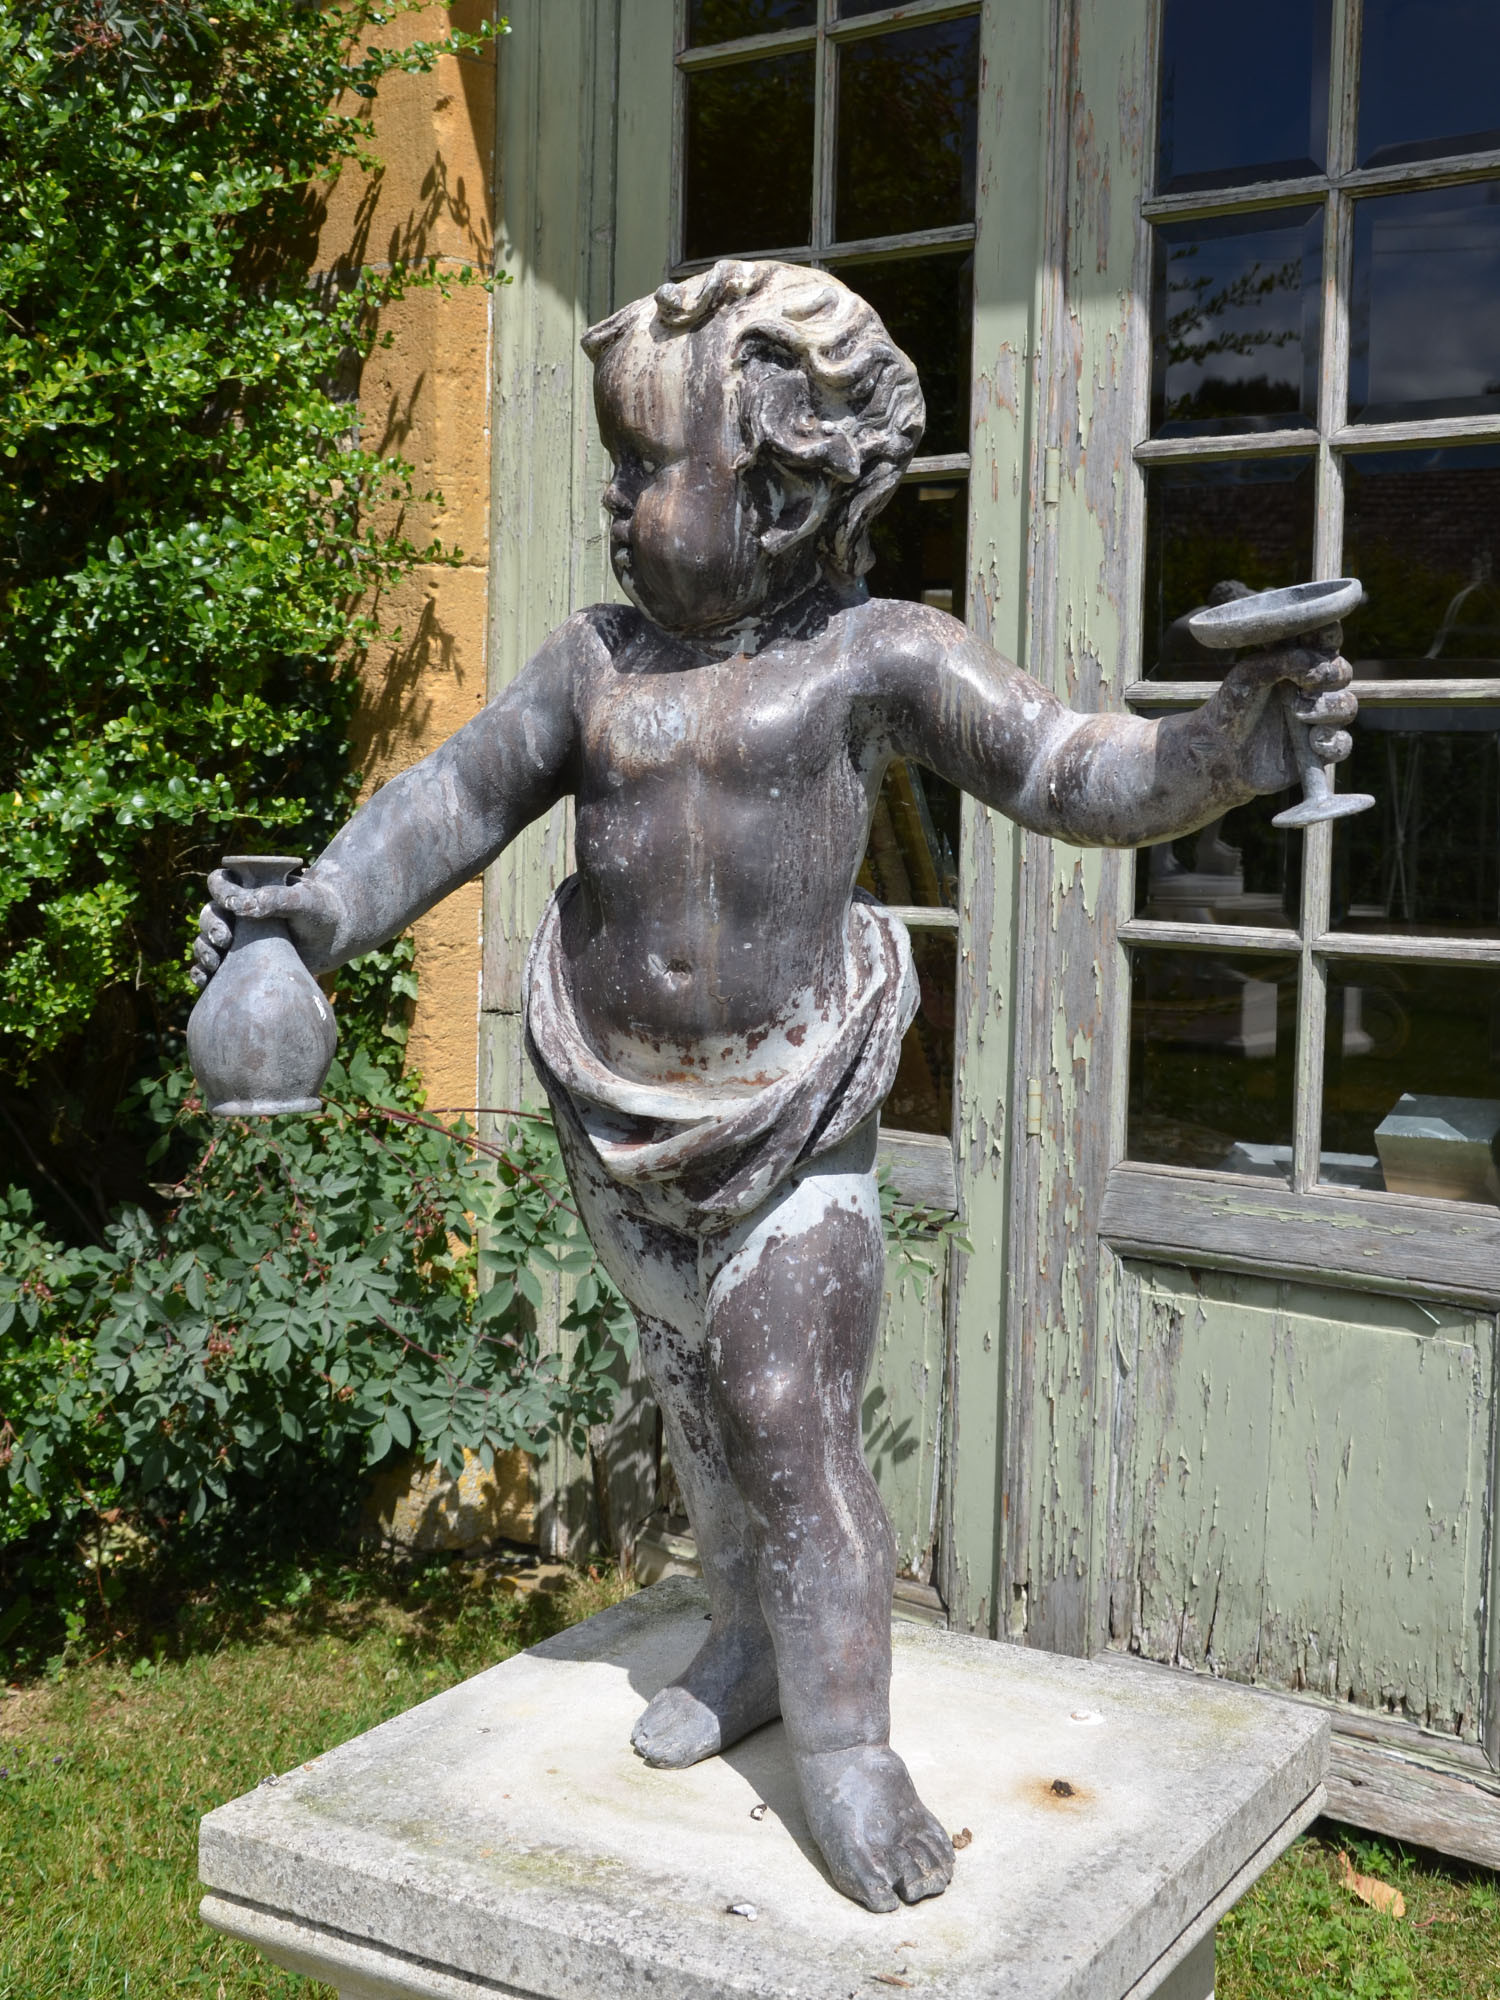 A 17th century lowland lead putto